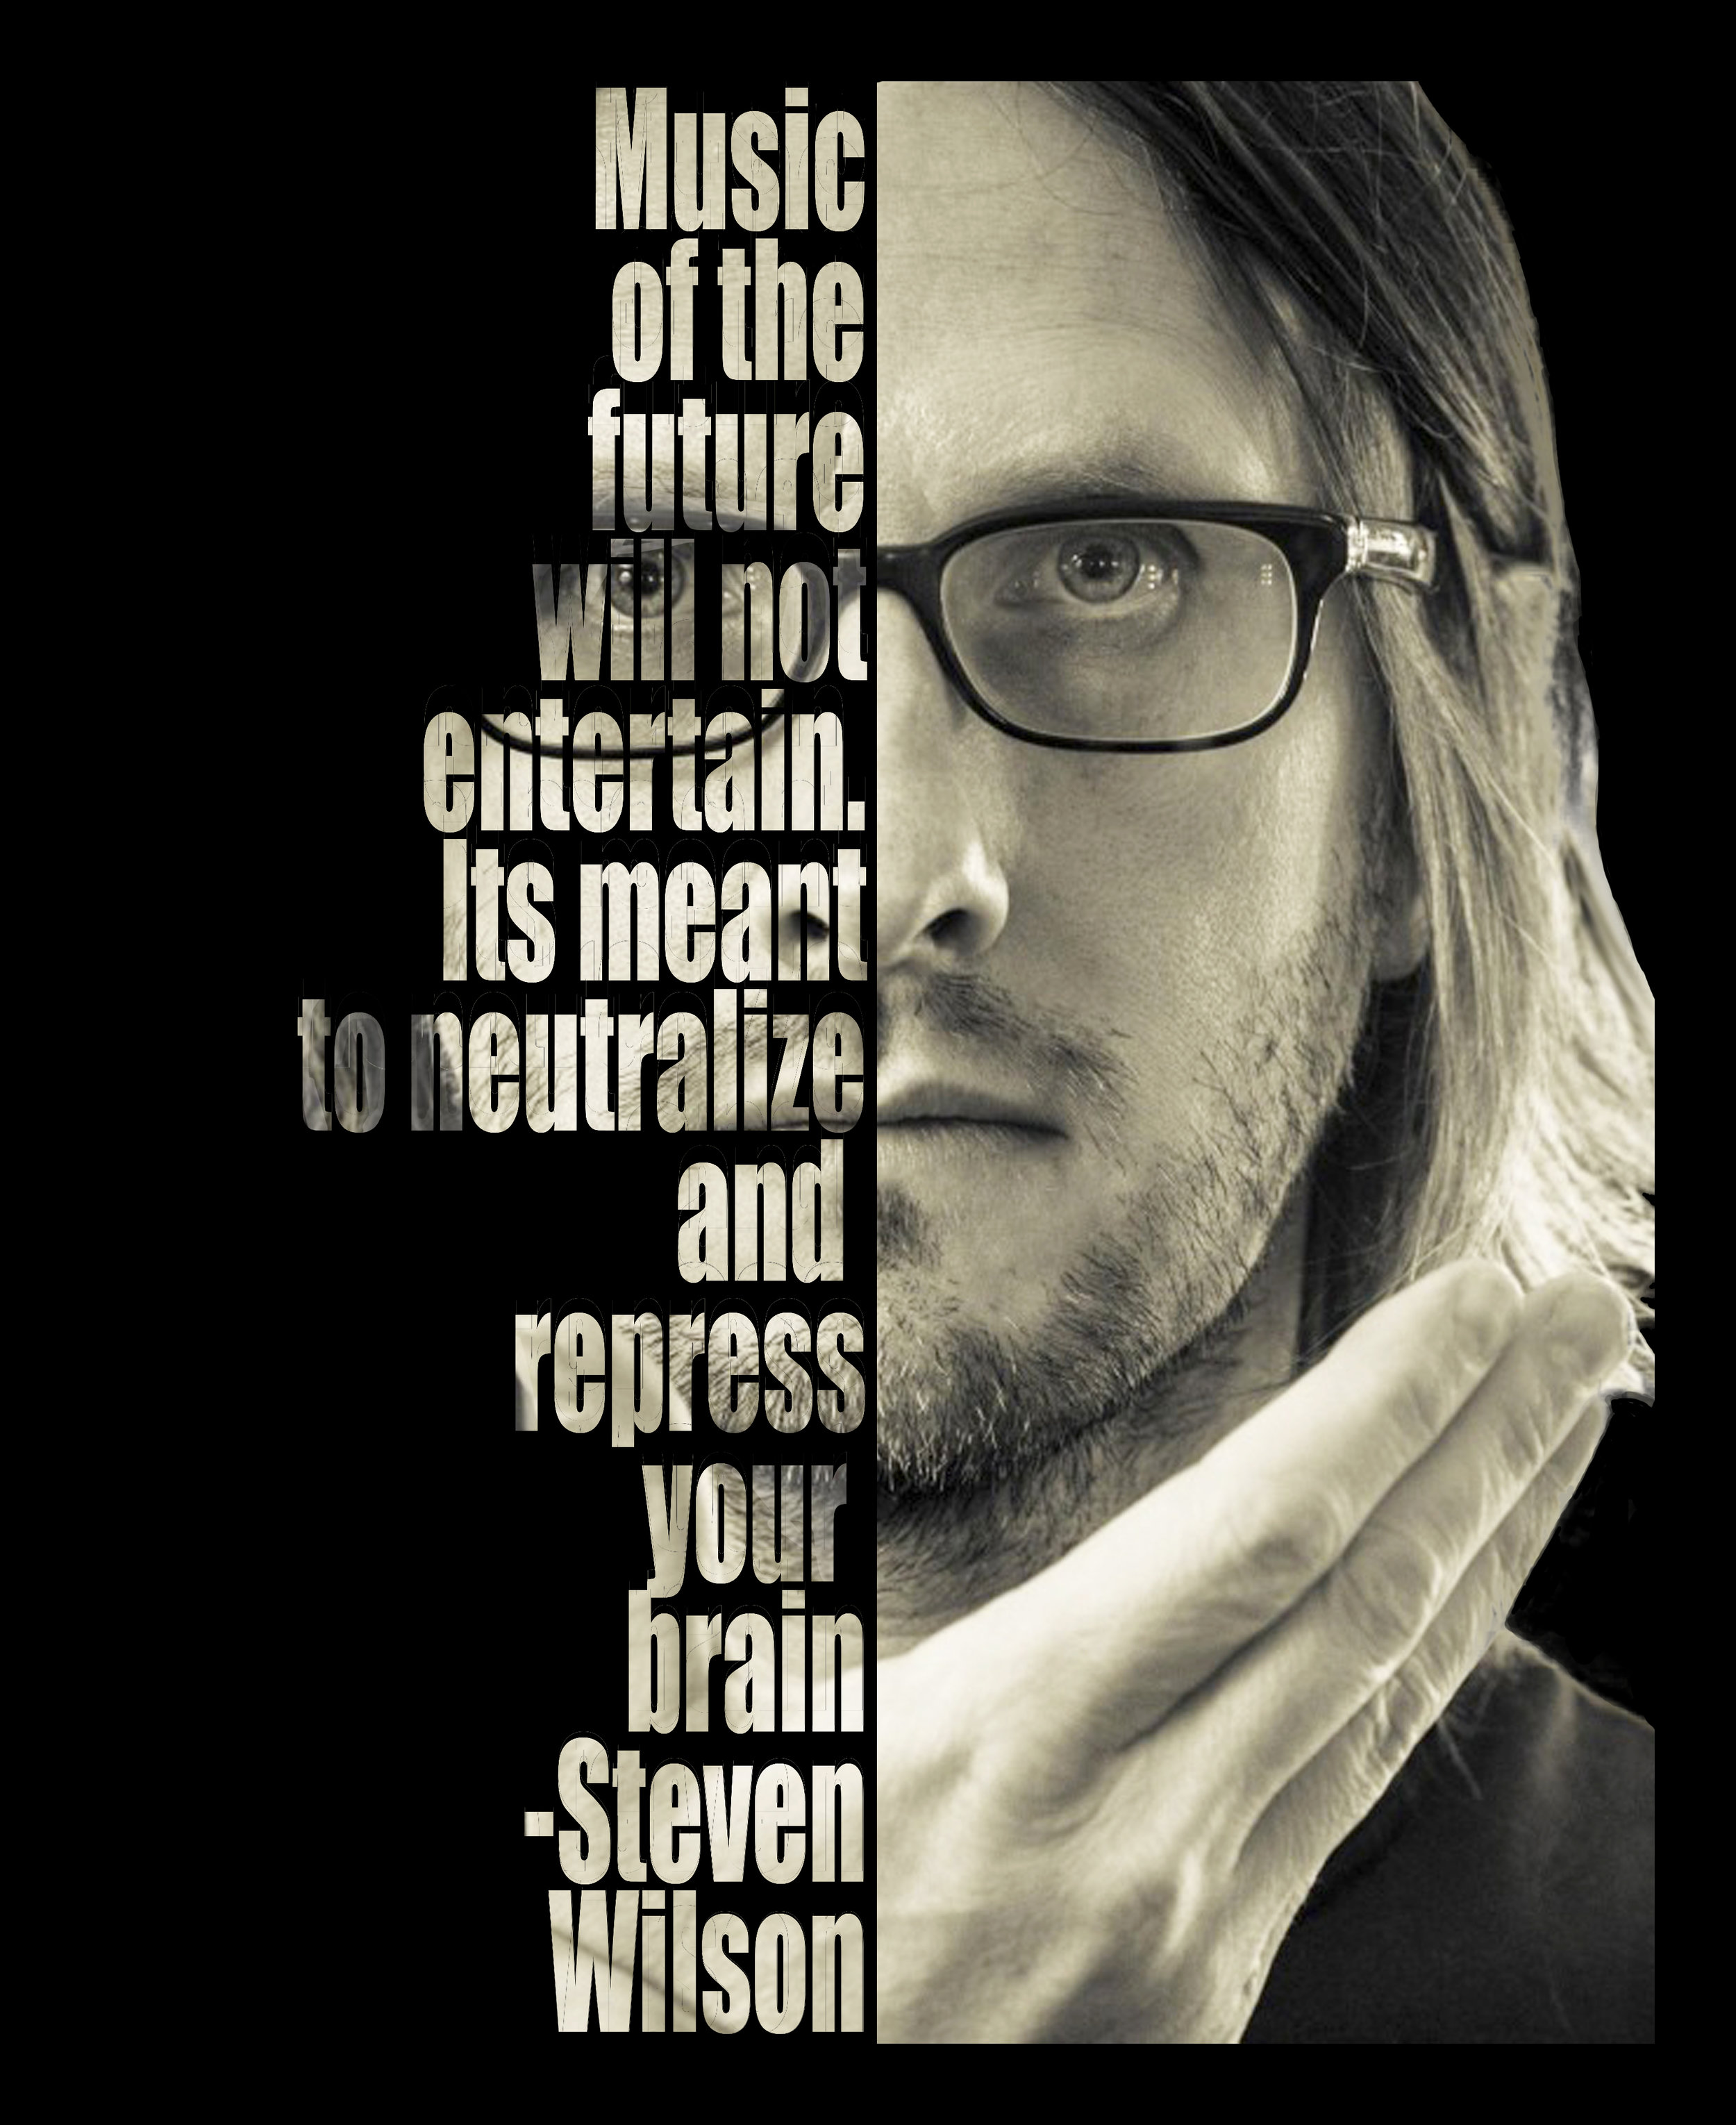 Steven Wilson (of Porcupine Tree)